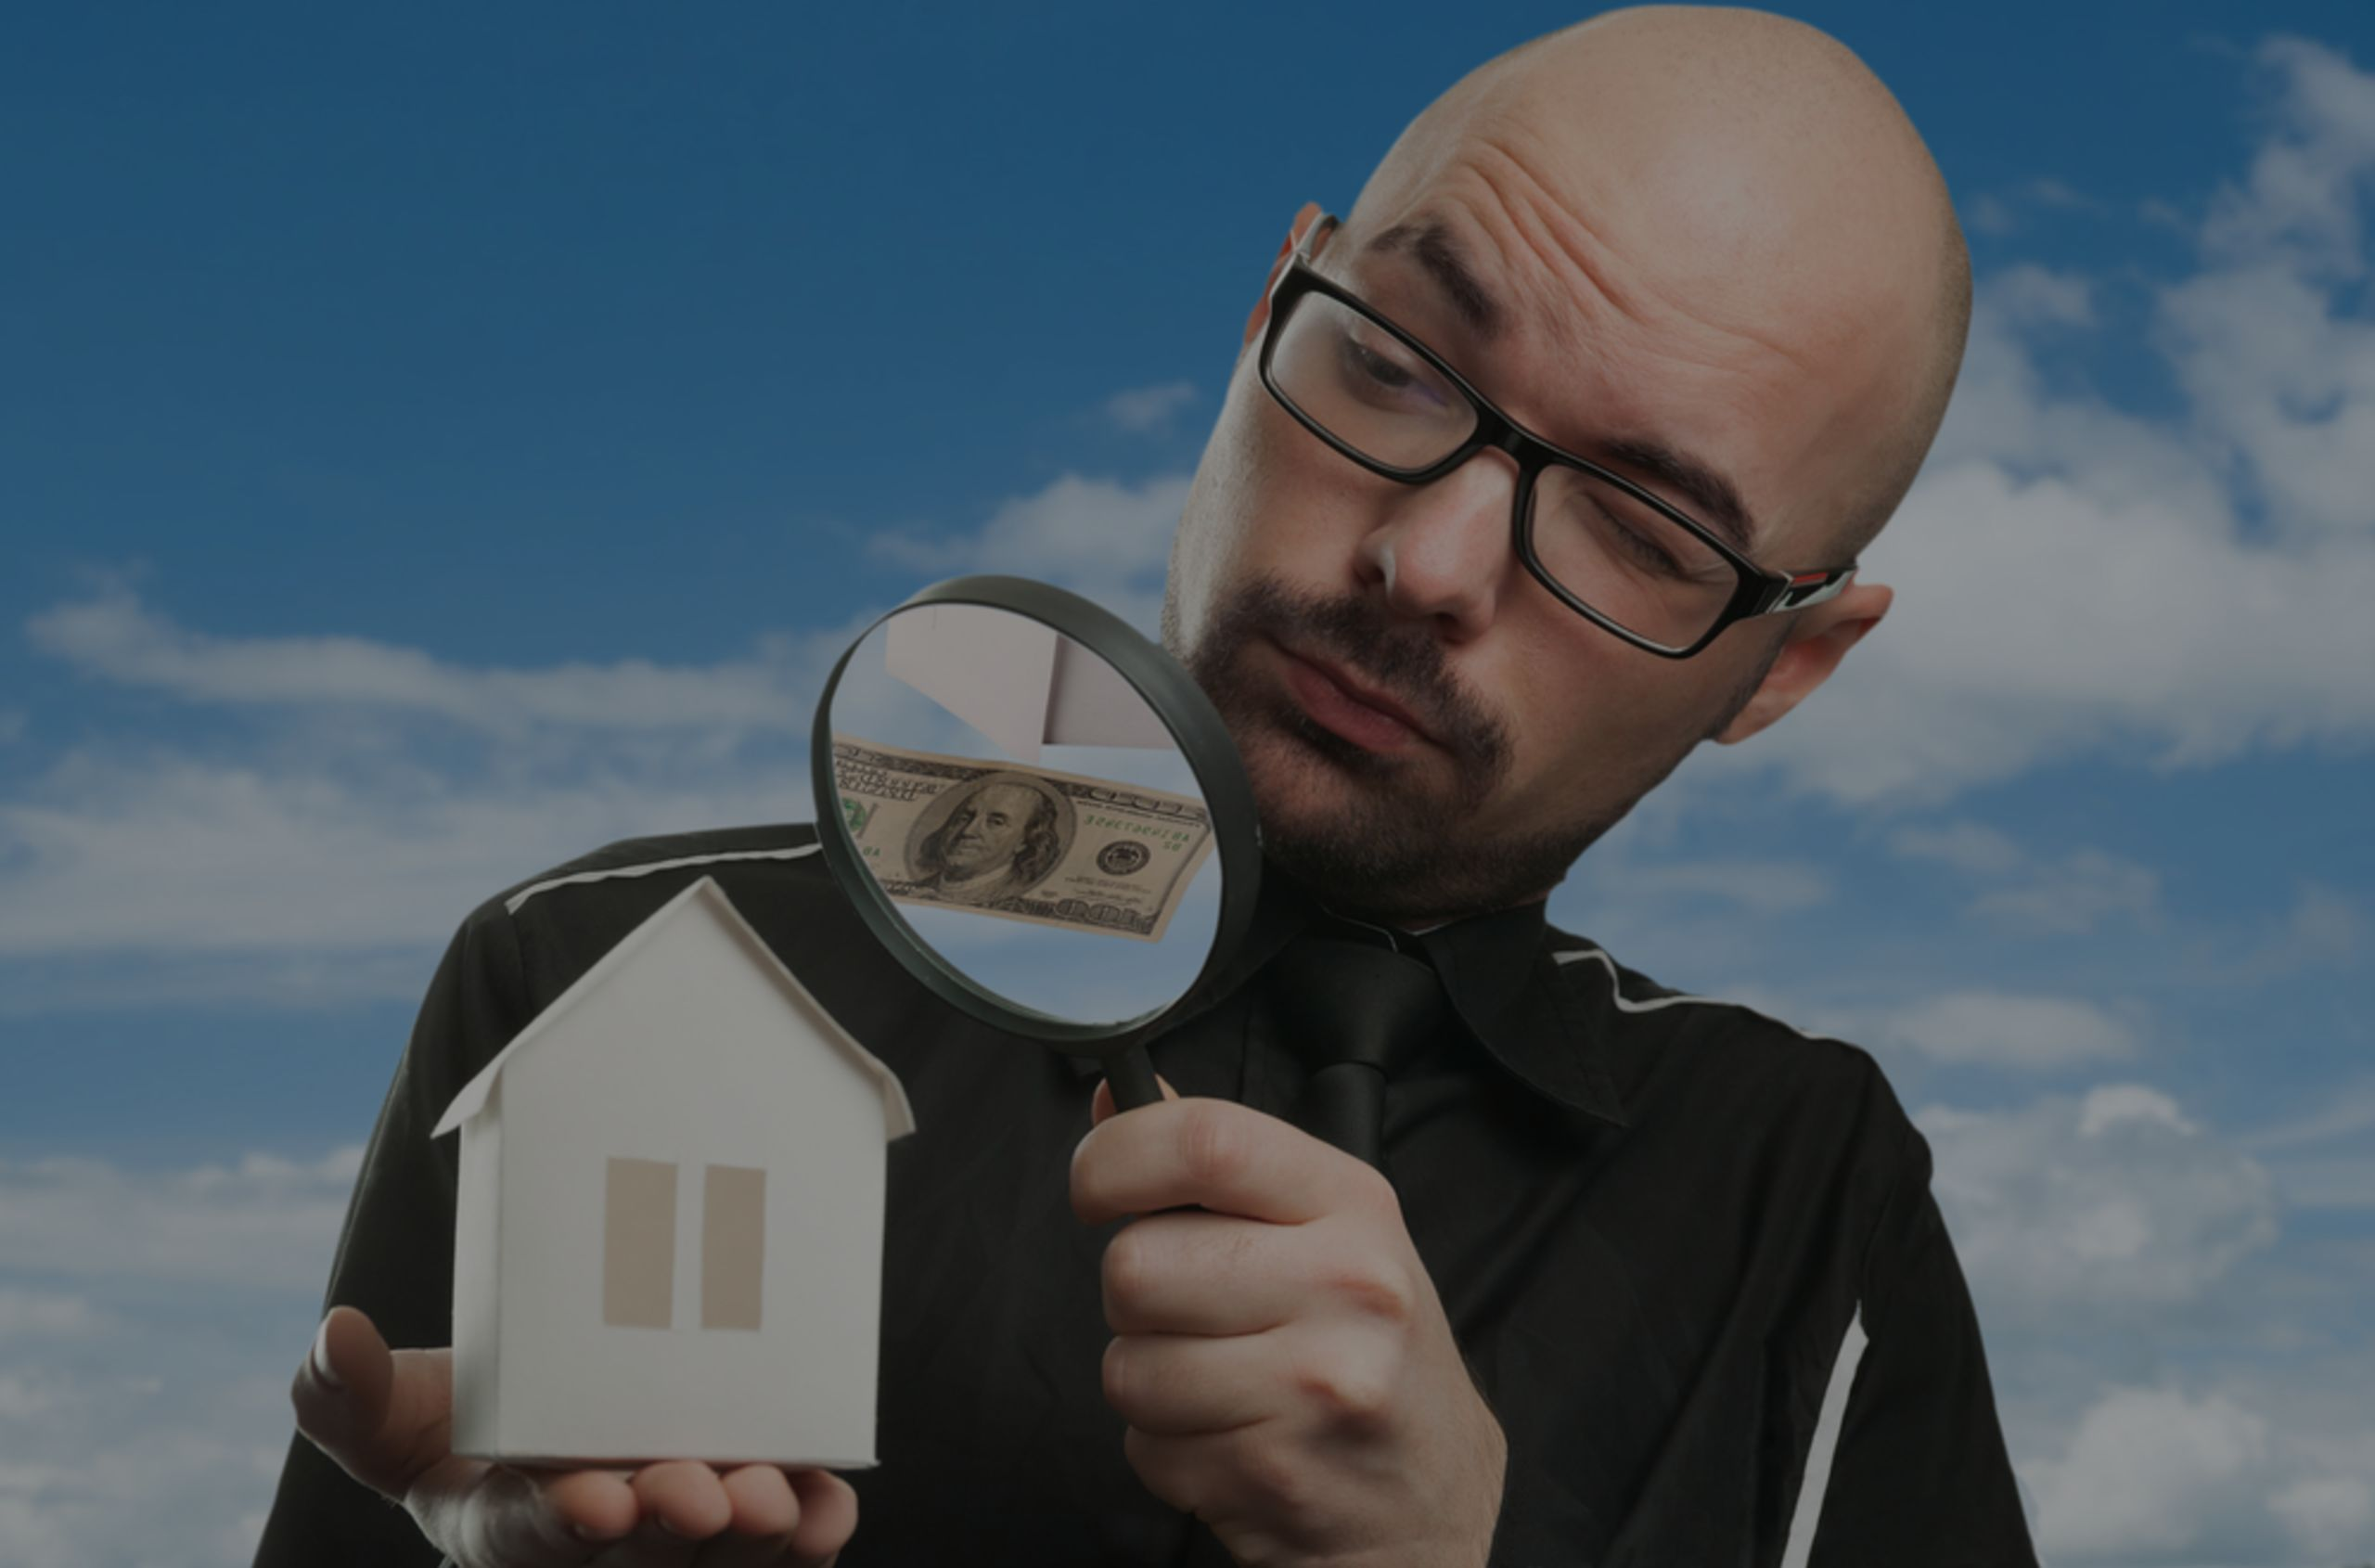 I Can't Find Good Real Estate Deals – What Do I Do?